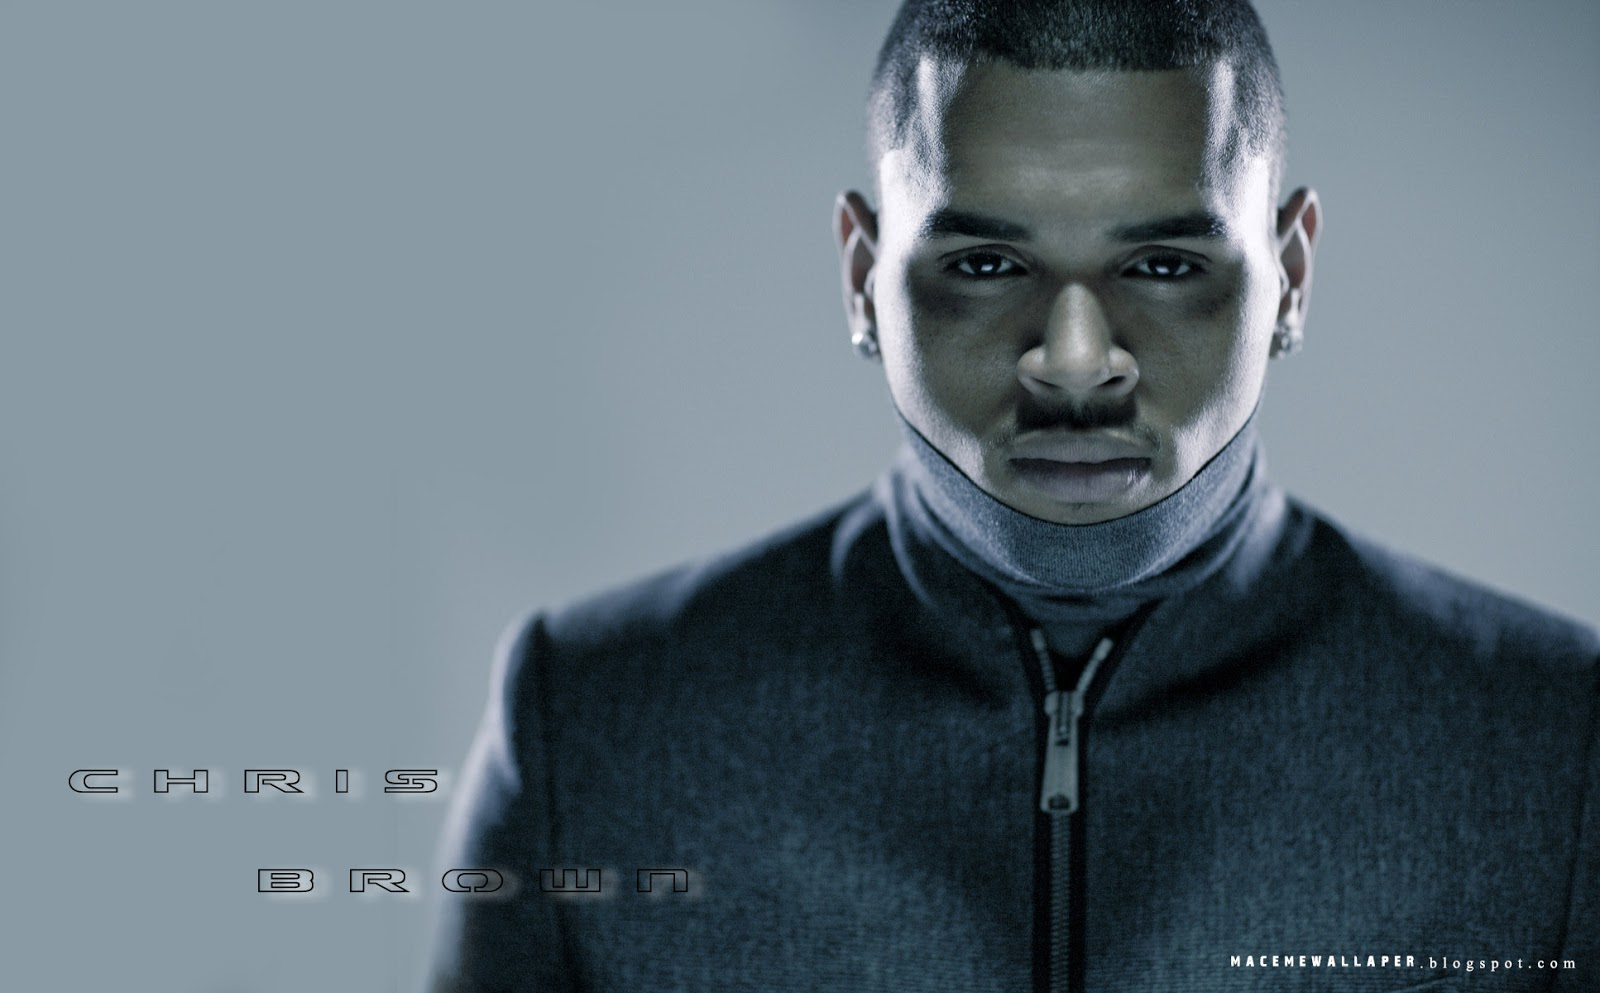 gallery for chris brown wallpaper 2012